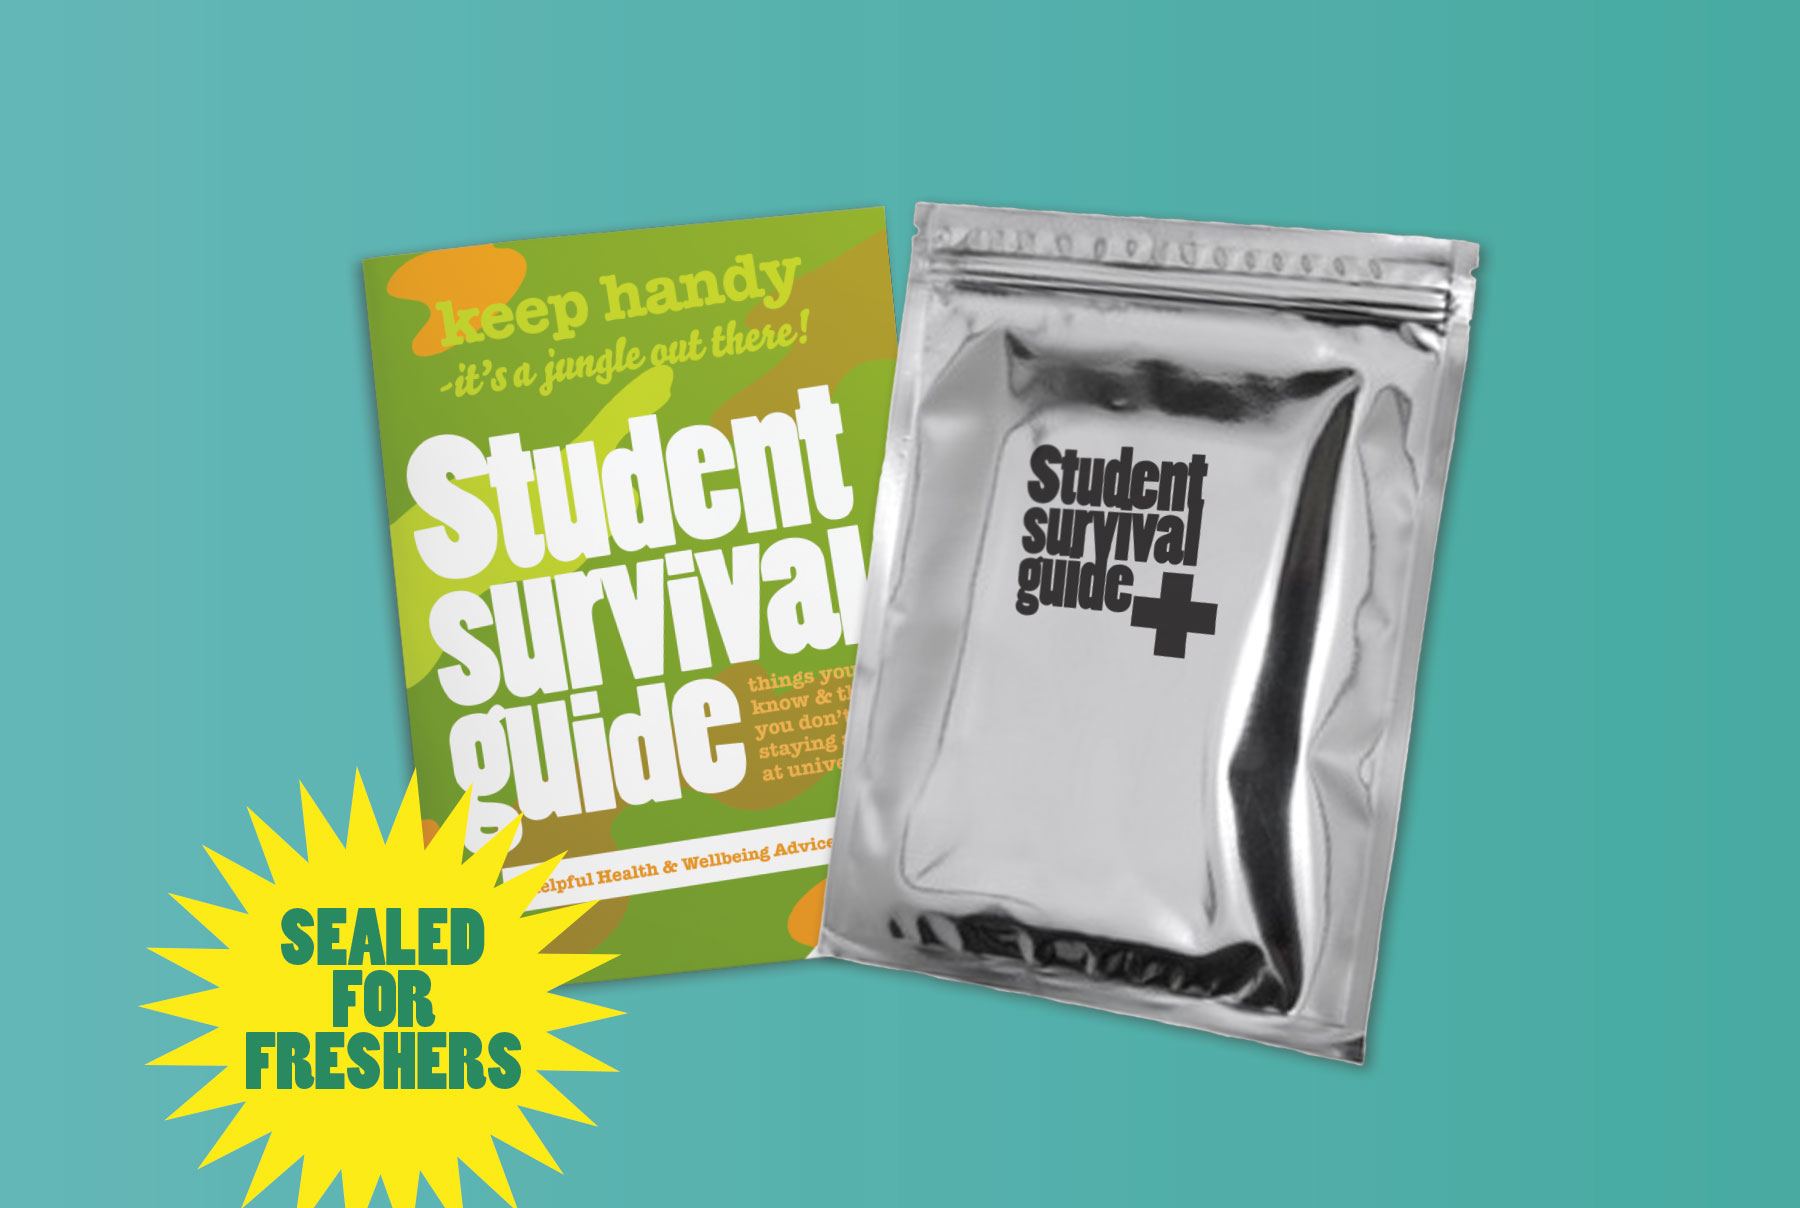 Student Food Survival Guide Brochure Design with Packaging